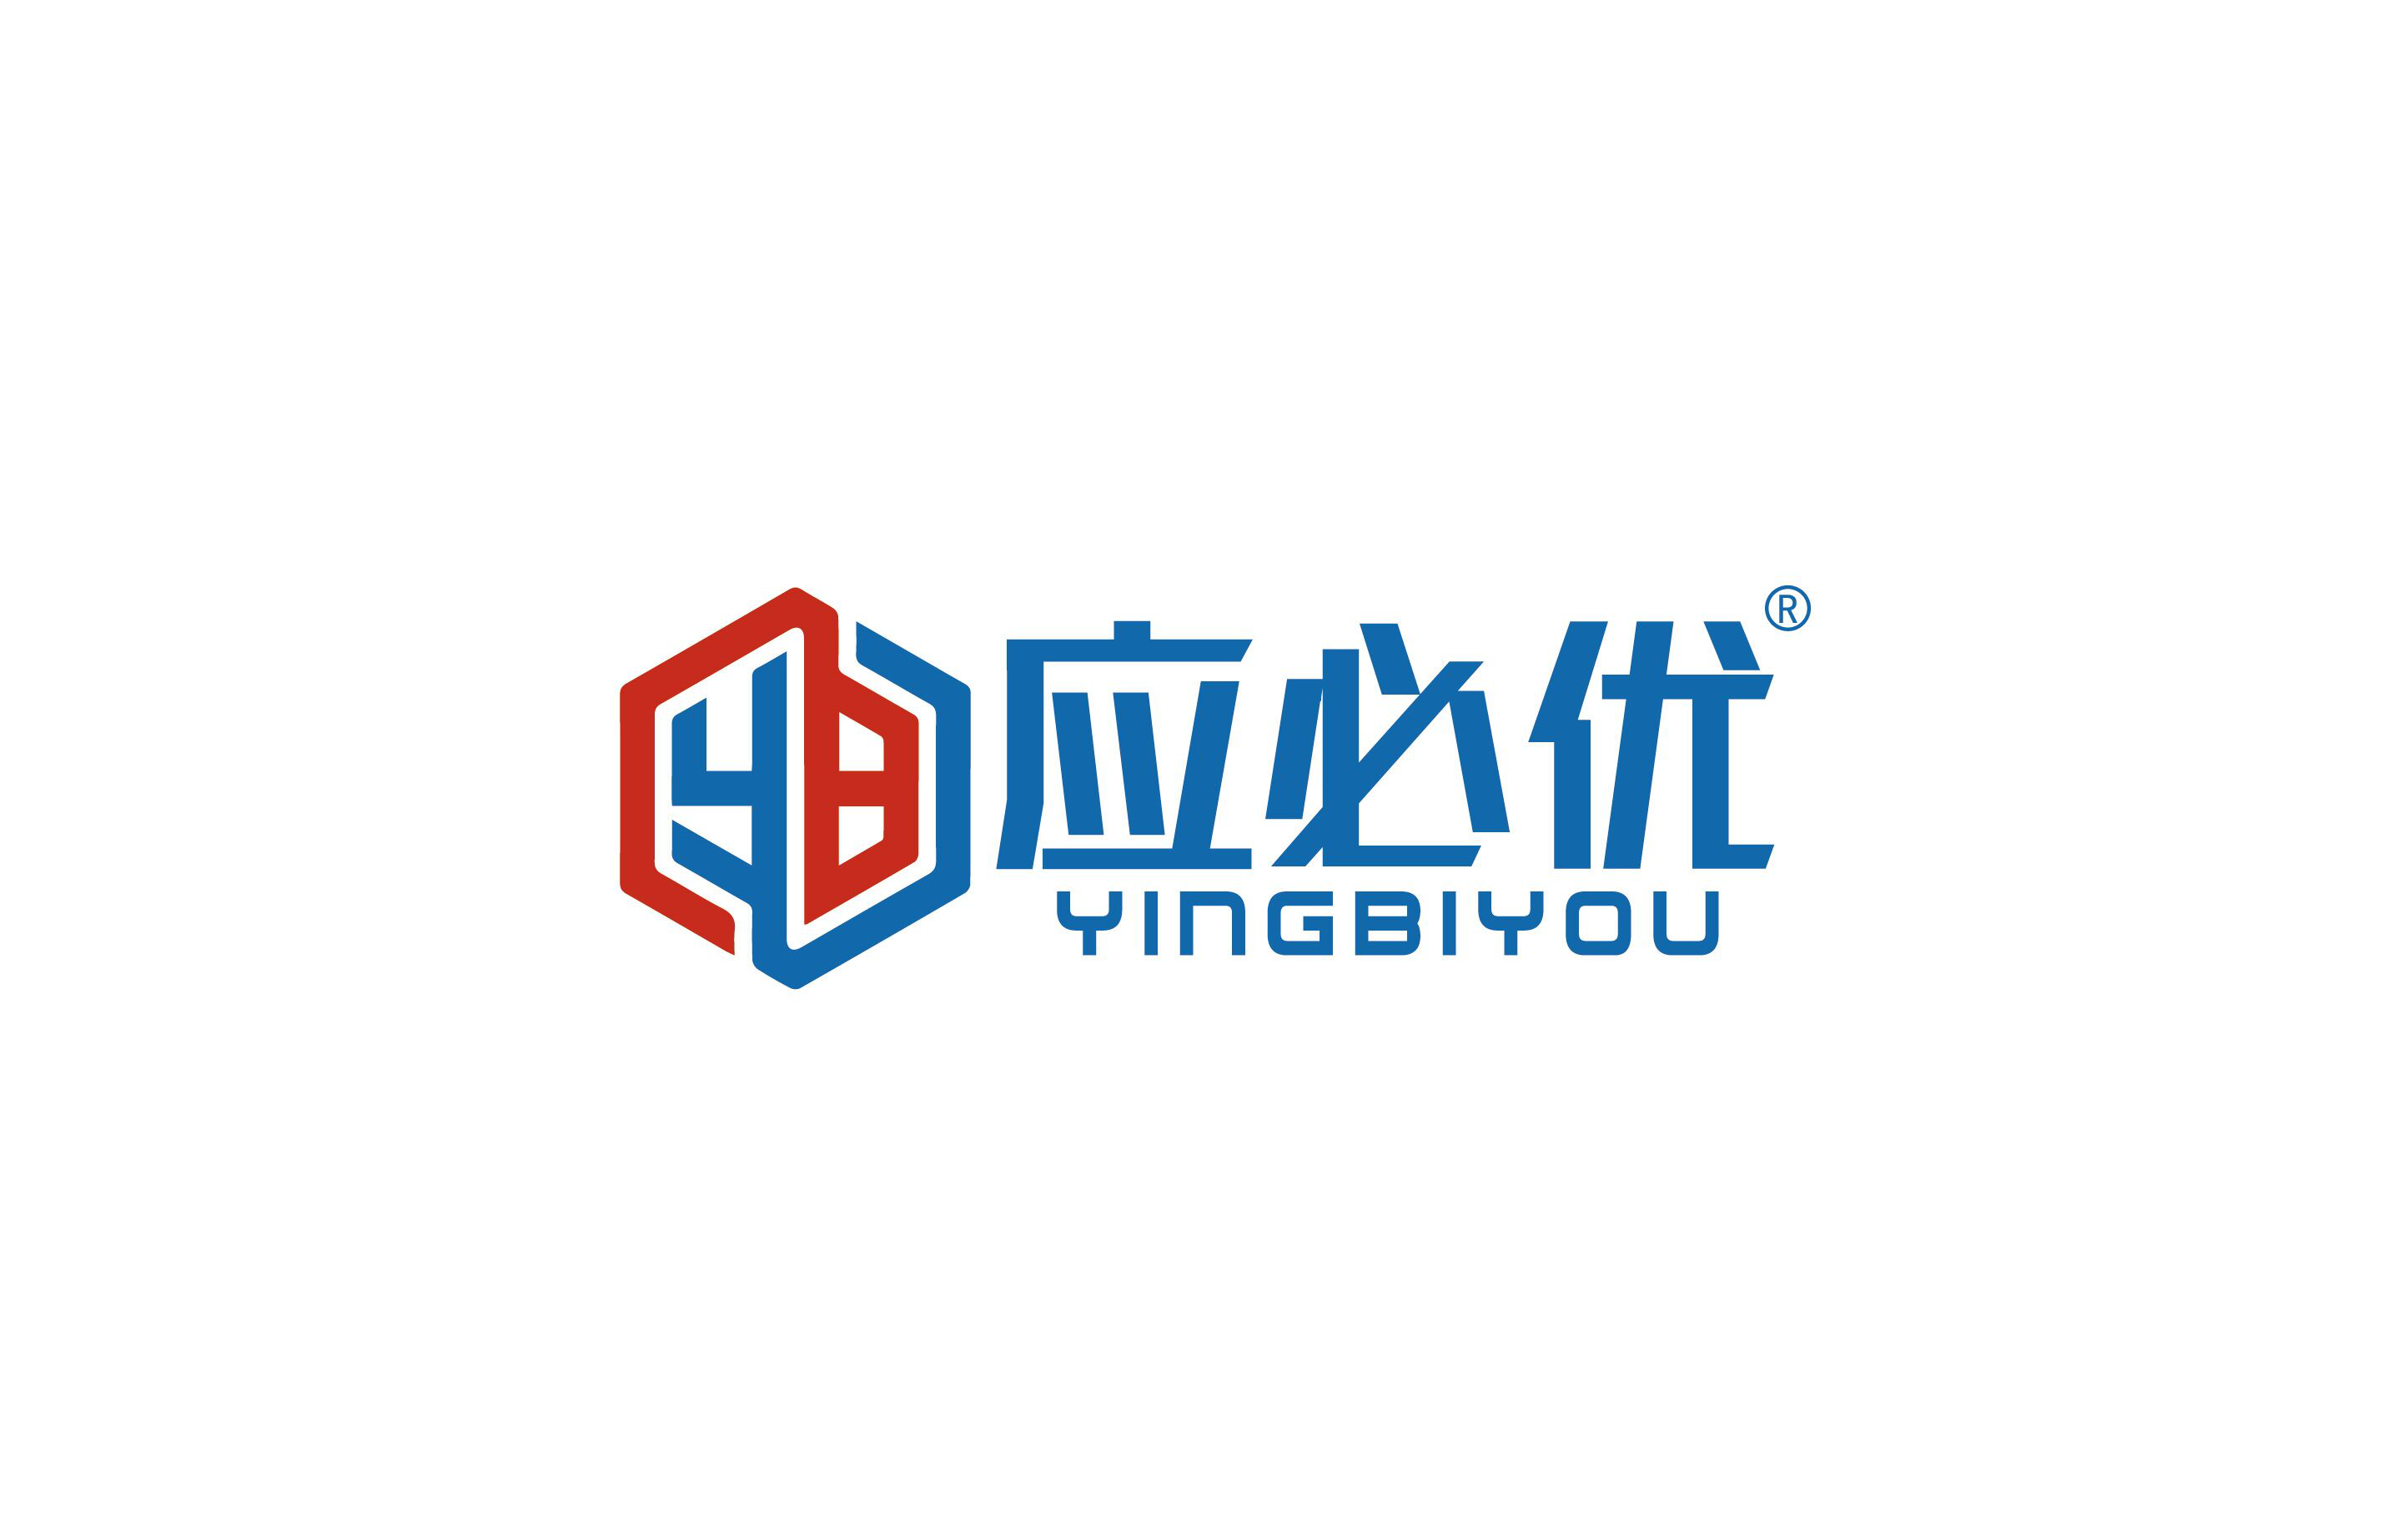 FOSHAN YINGBIYOU MOTOR CO,LTD.